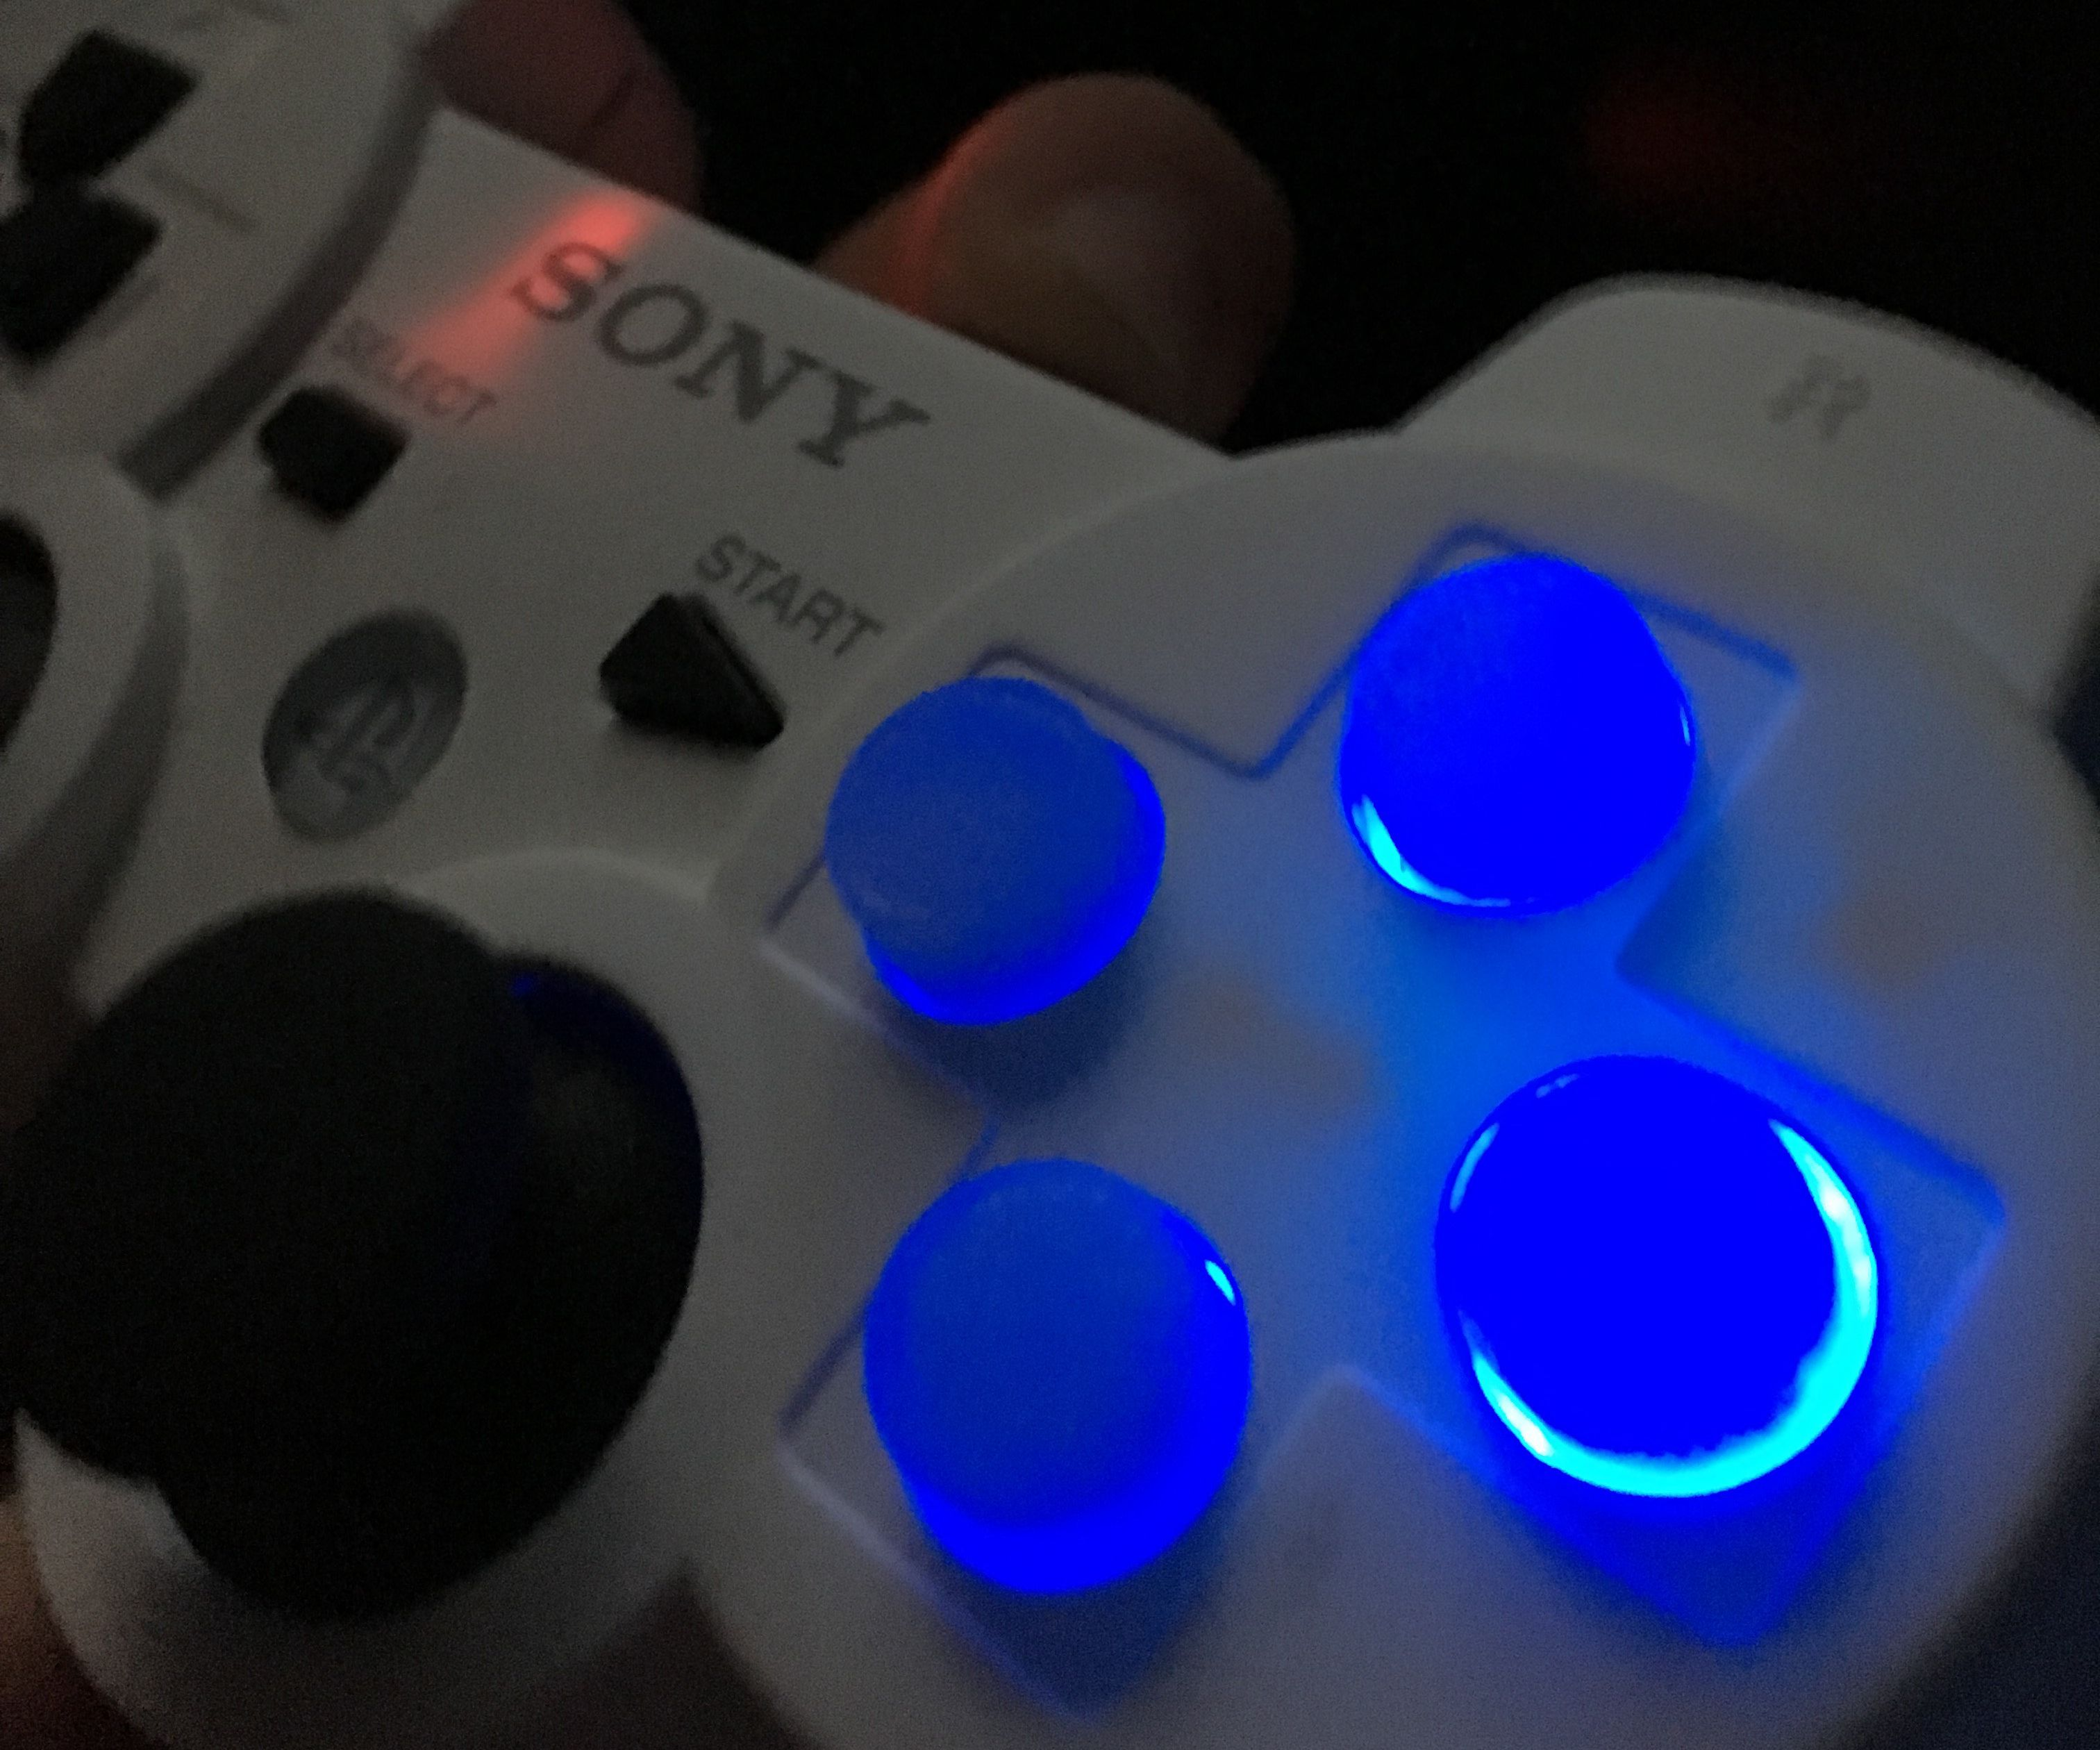 PS3/4 Controller LED Mod